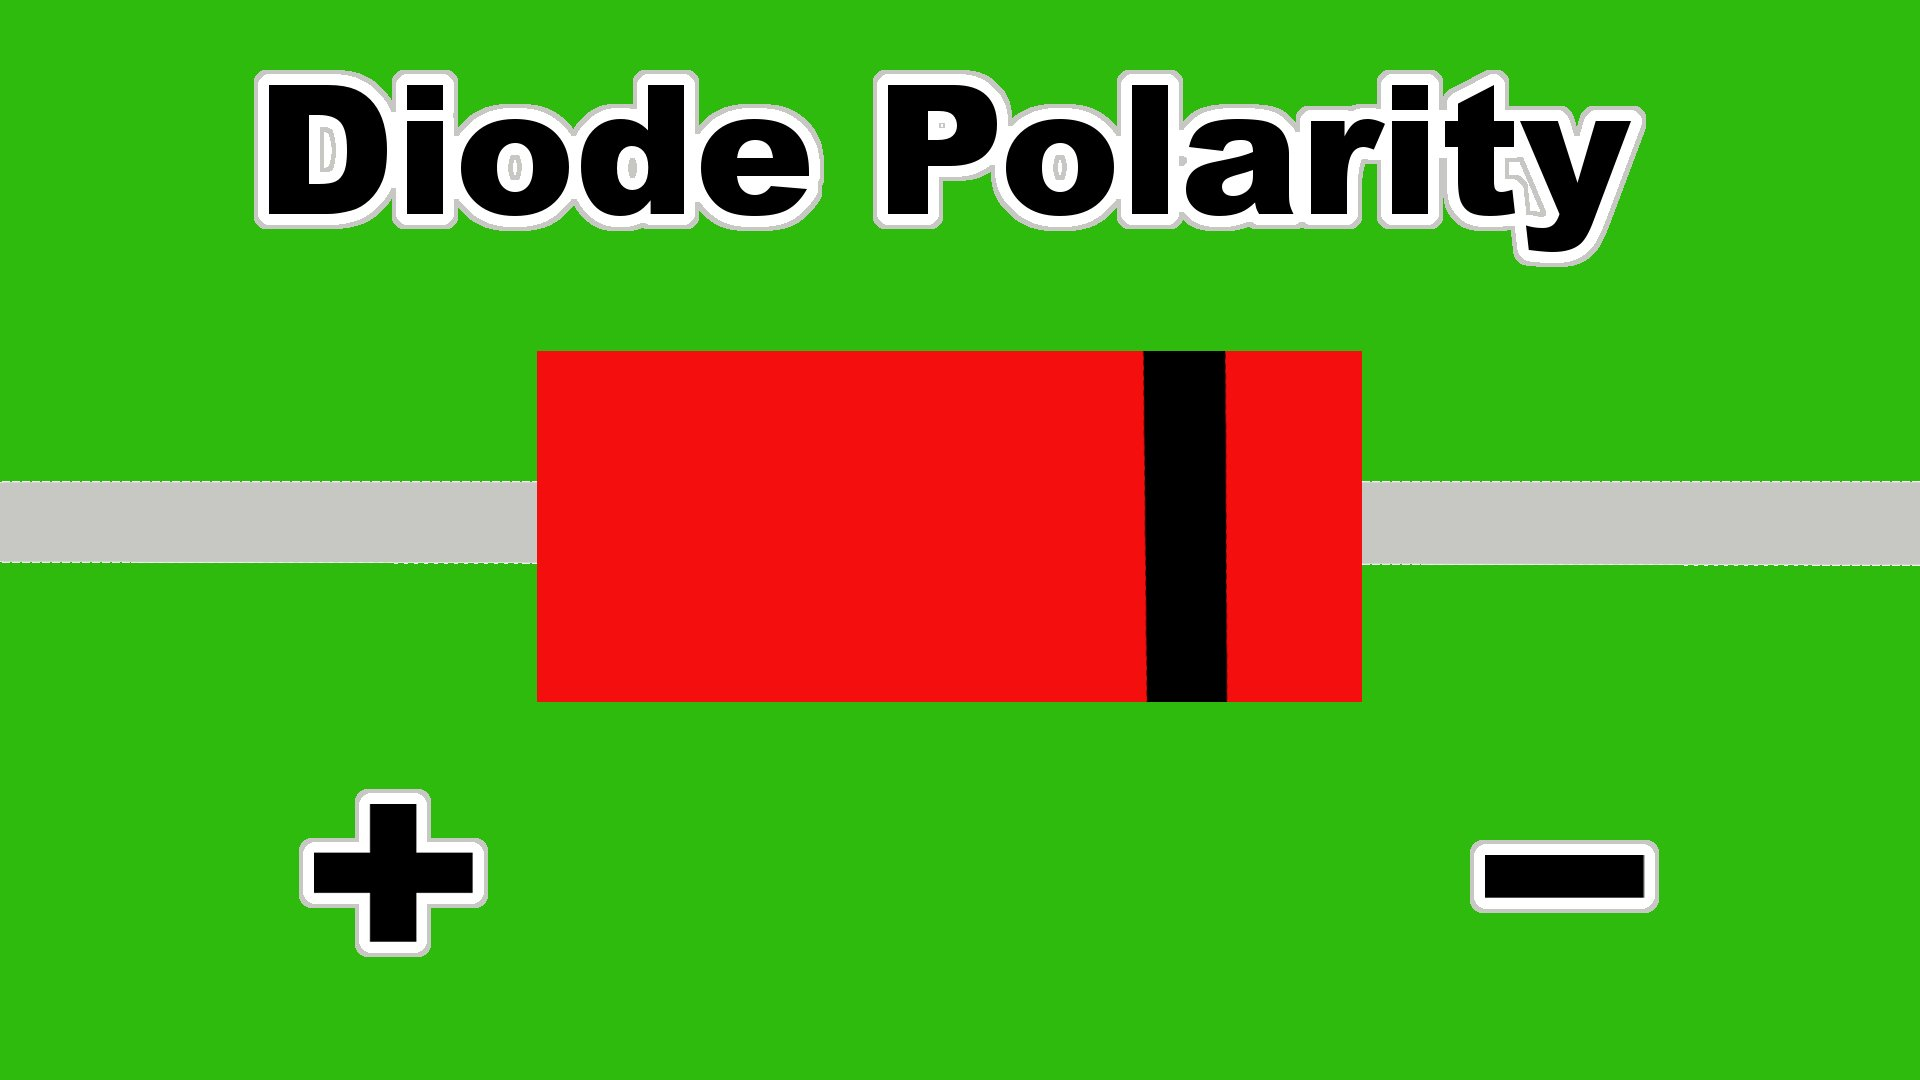 diode polarity marking